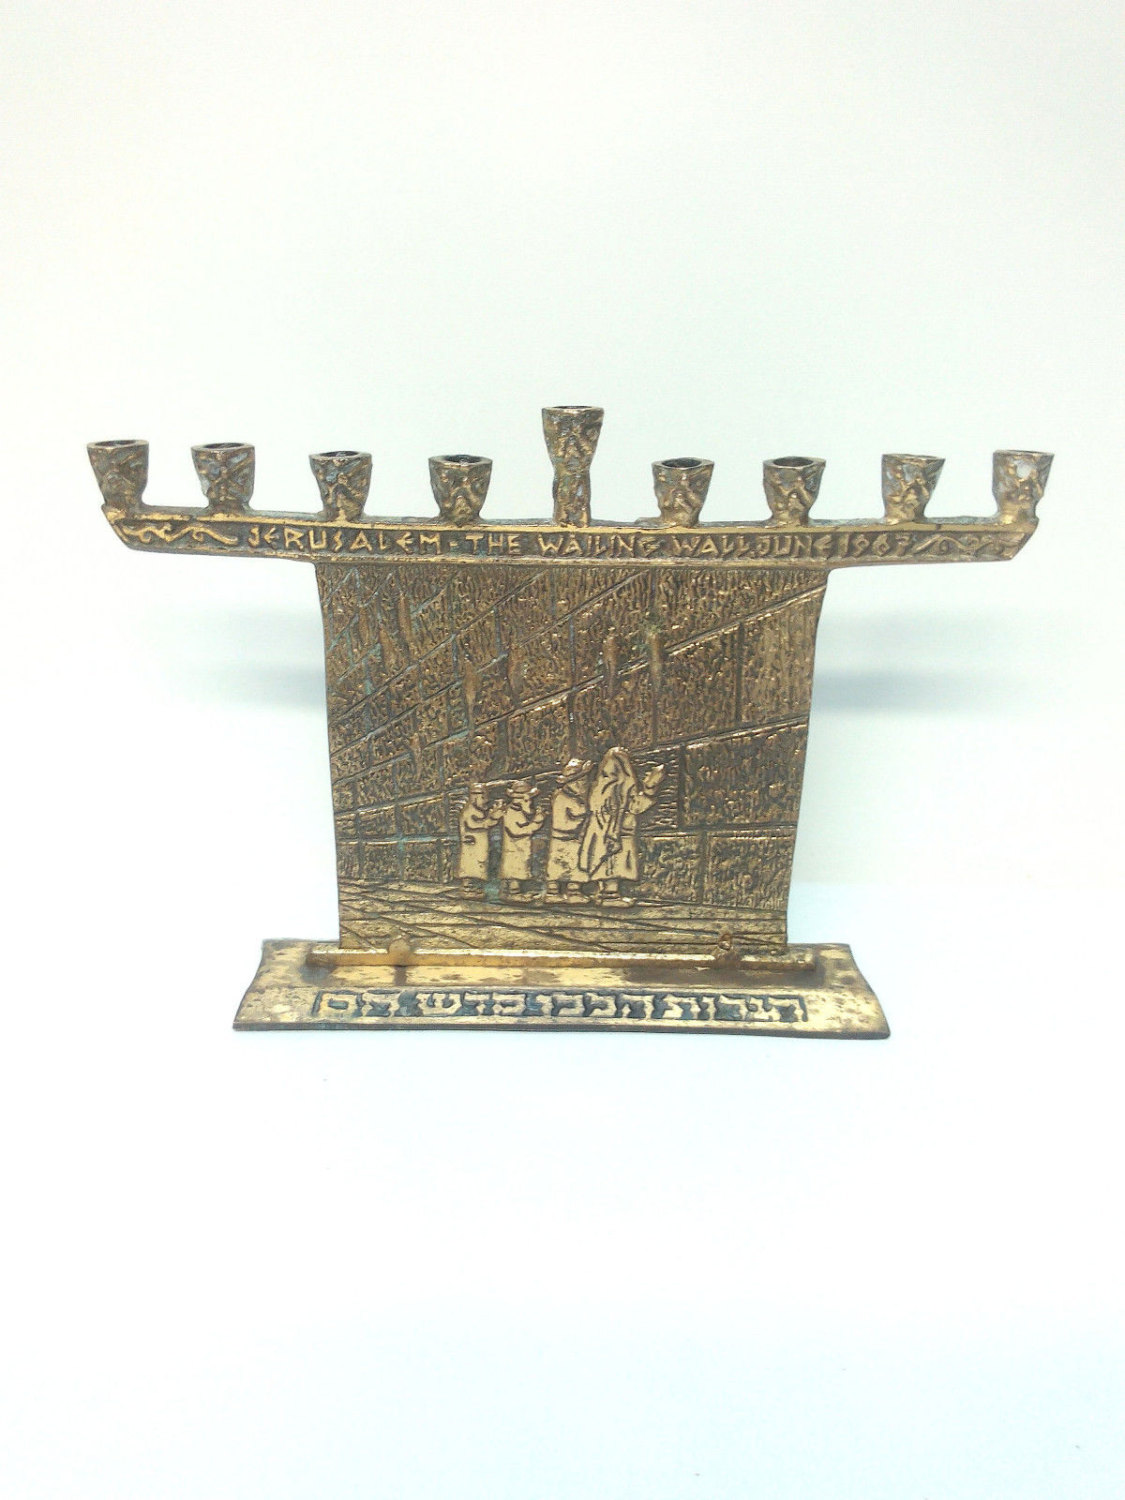 Wailing Wall Menorah